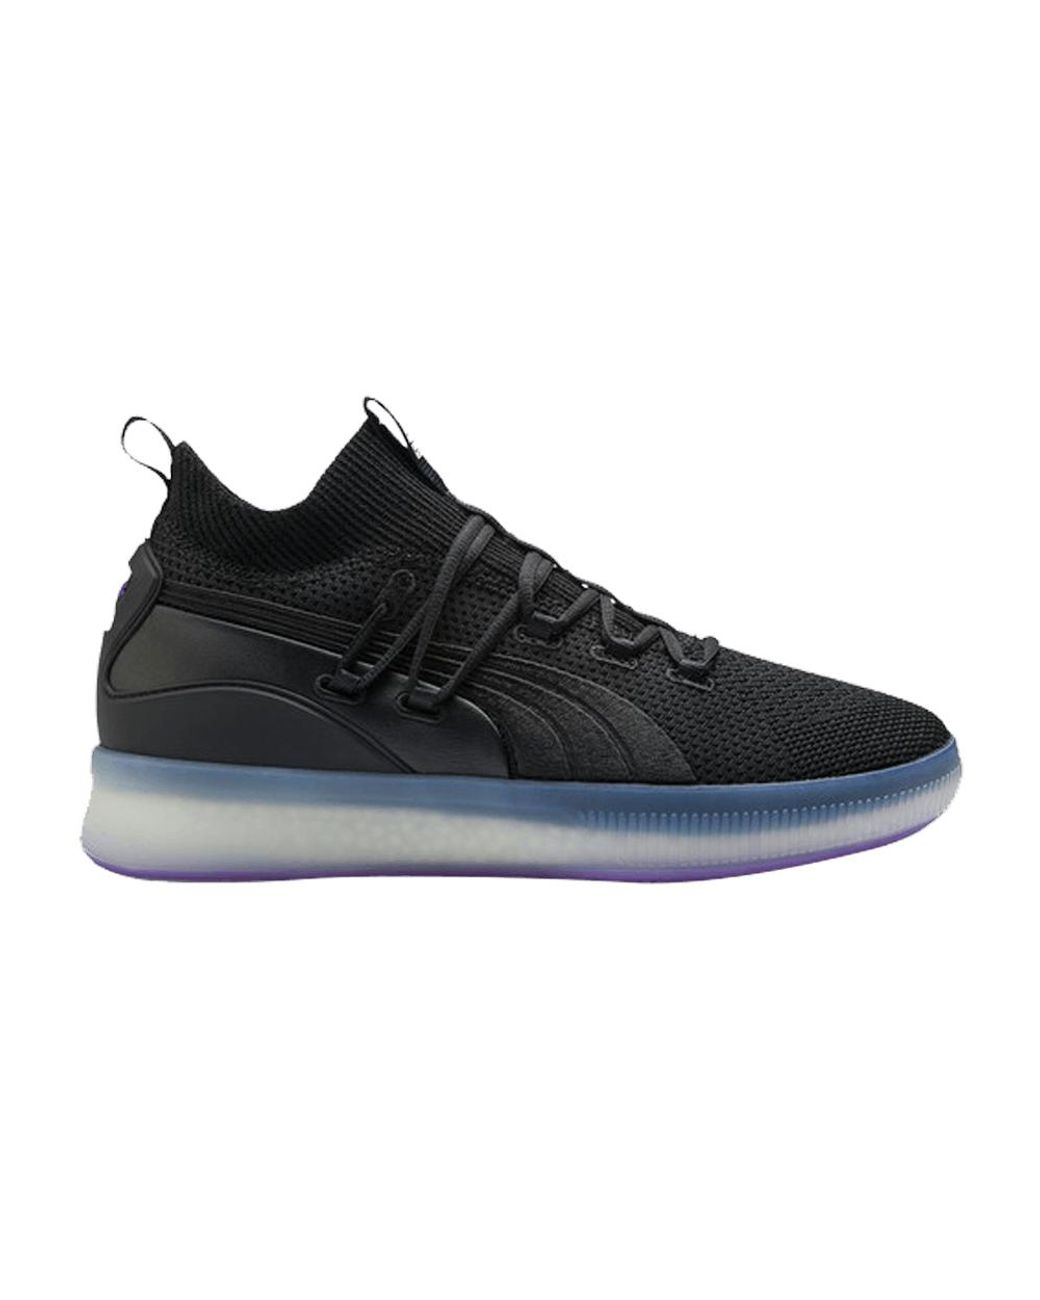 PUMA Lace Clyde Court Disrupt in Black